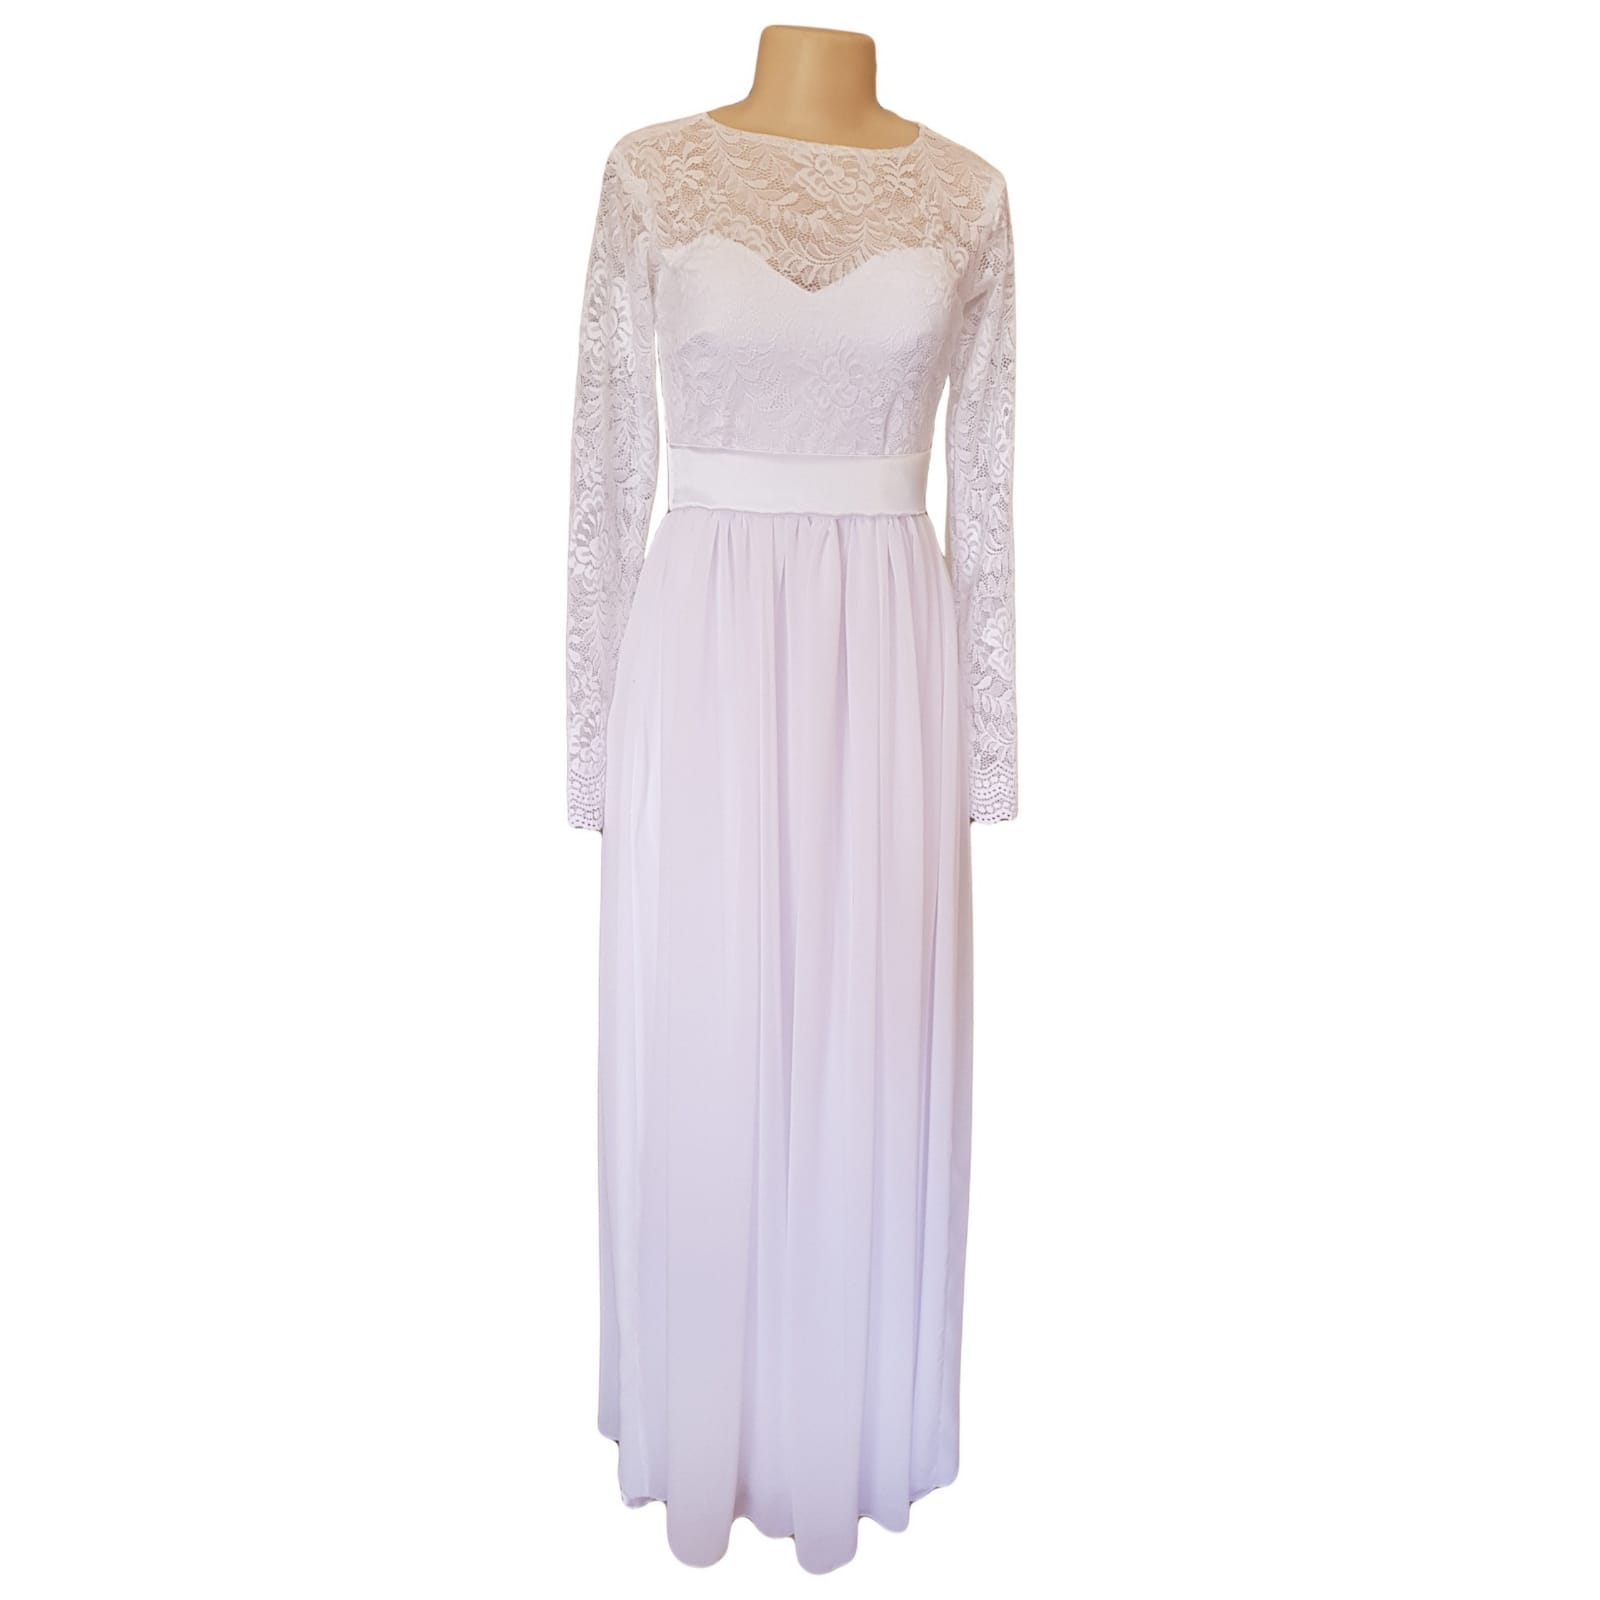 White lace bodice simple confirmation dress 7 white long lace bodice confirmation dress with long lace sleeves and a satin belt.